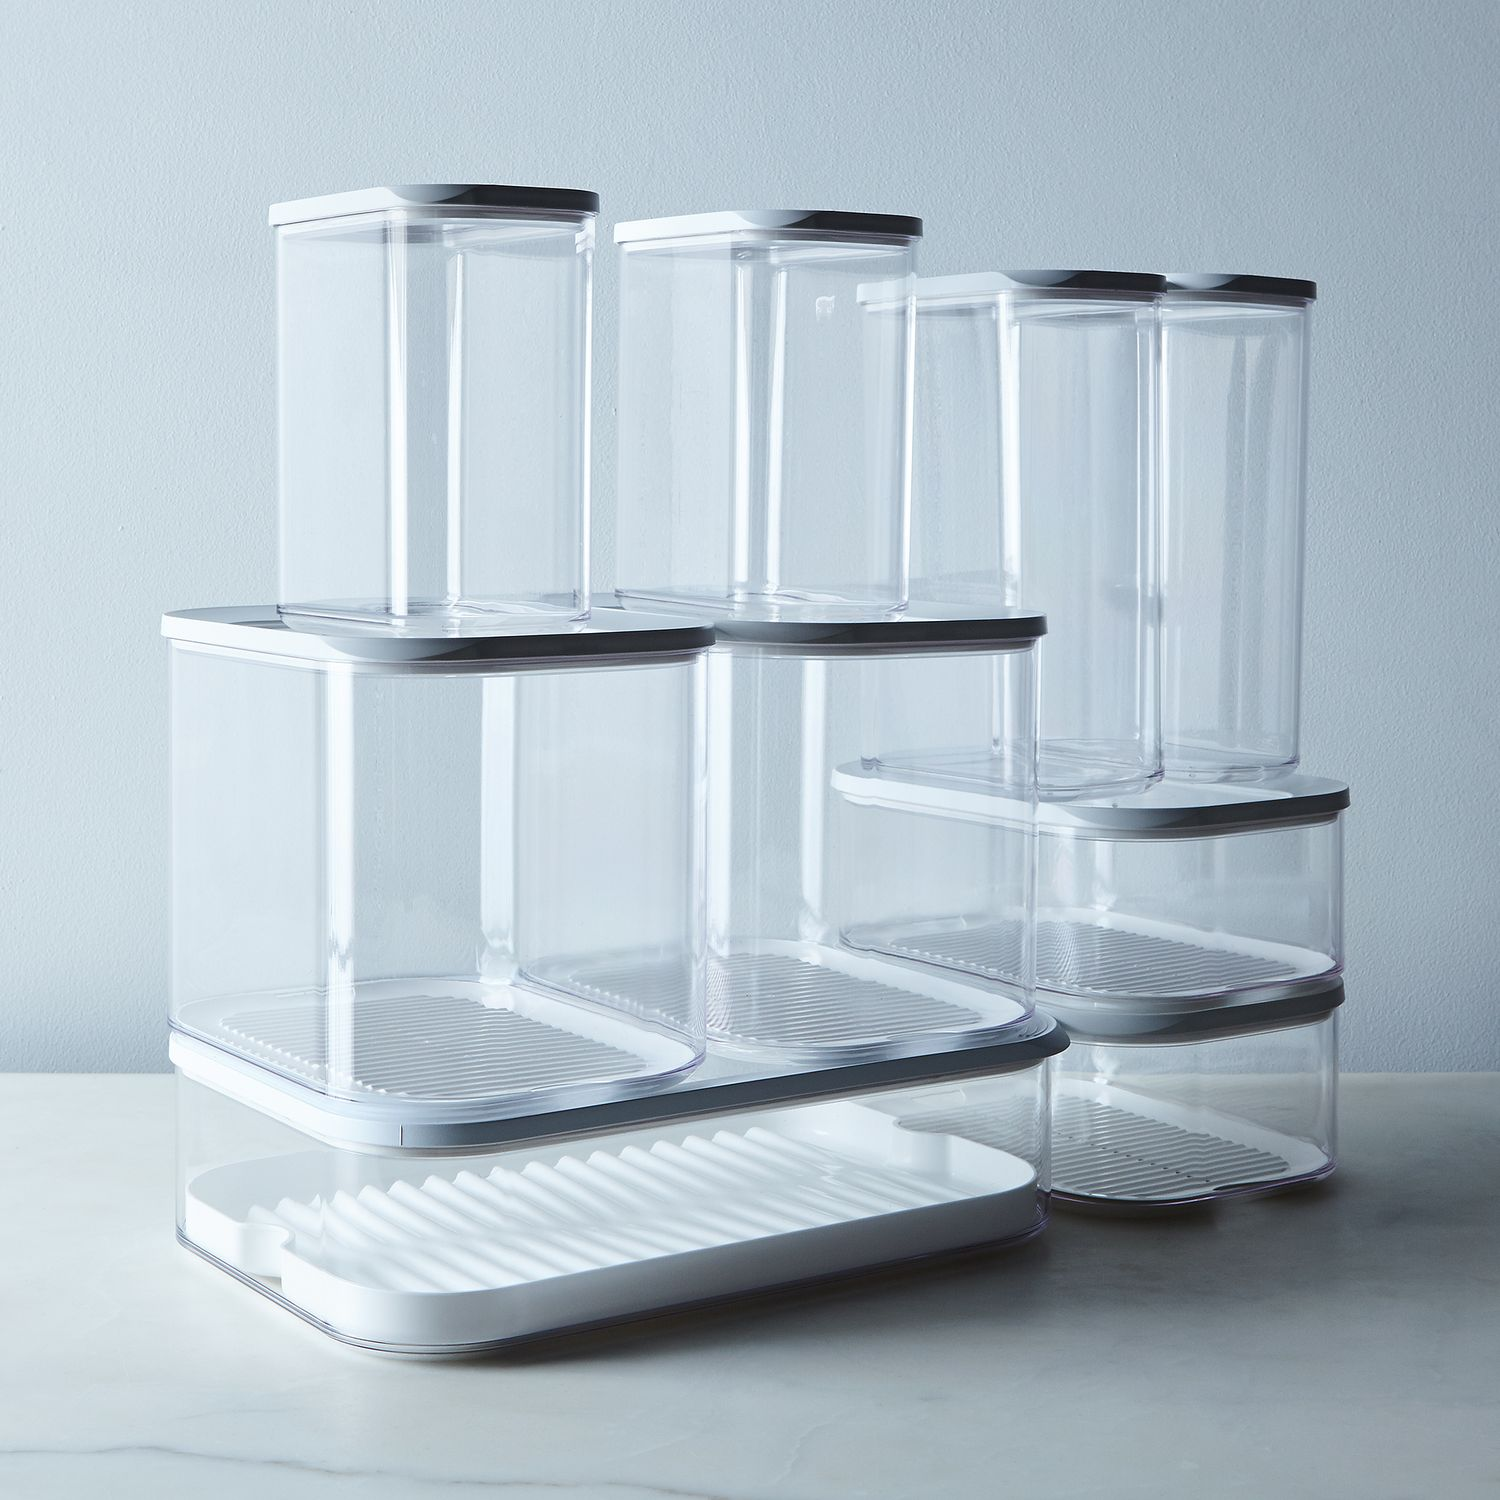 Pantry Food Storage Containers: Modula Stackable Storage Containers (Set Of 2) On Food52